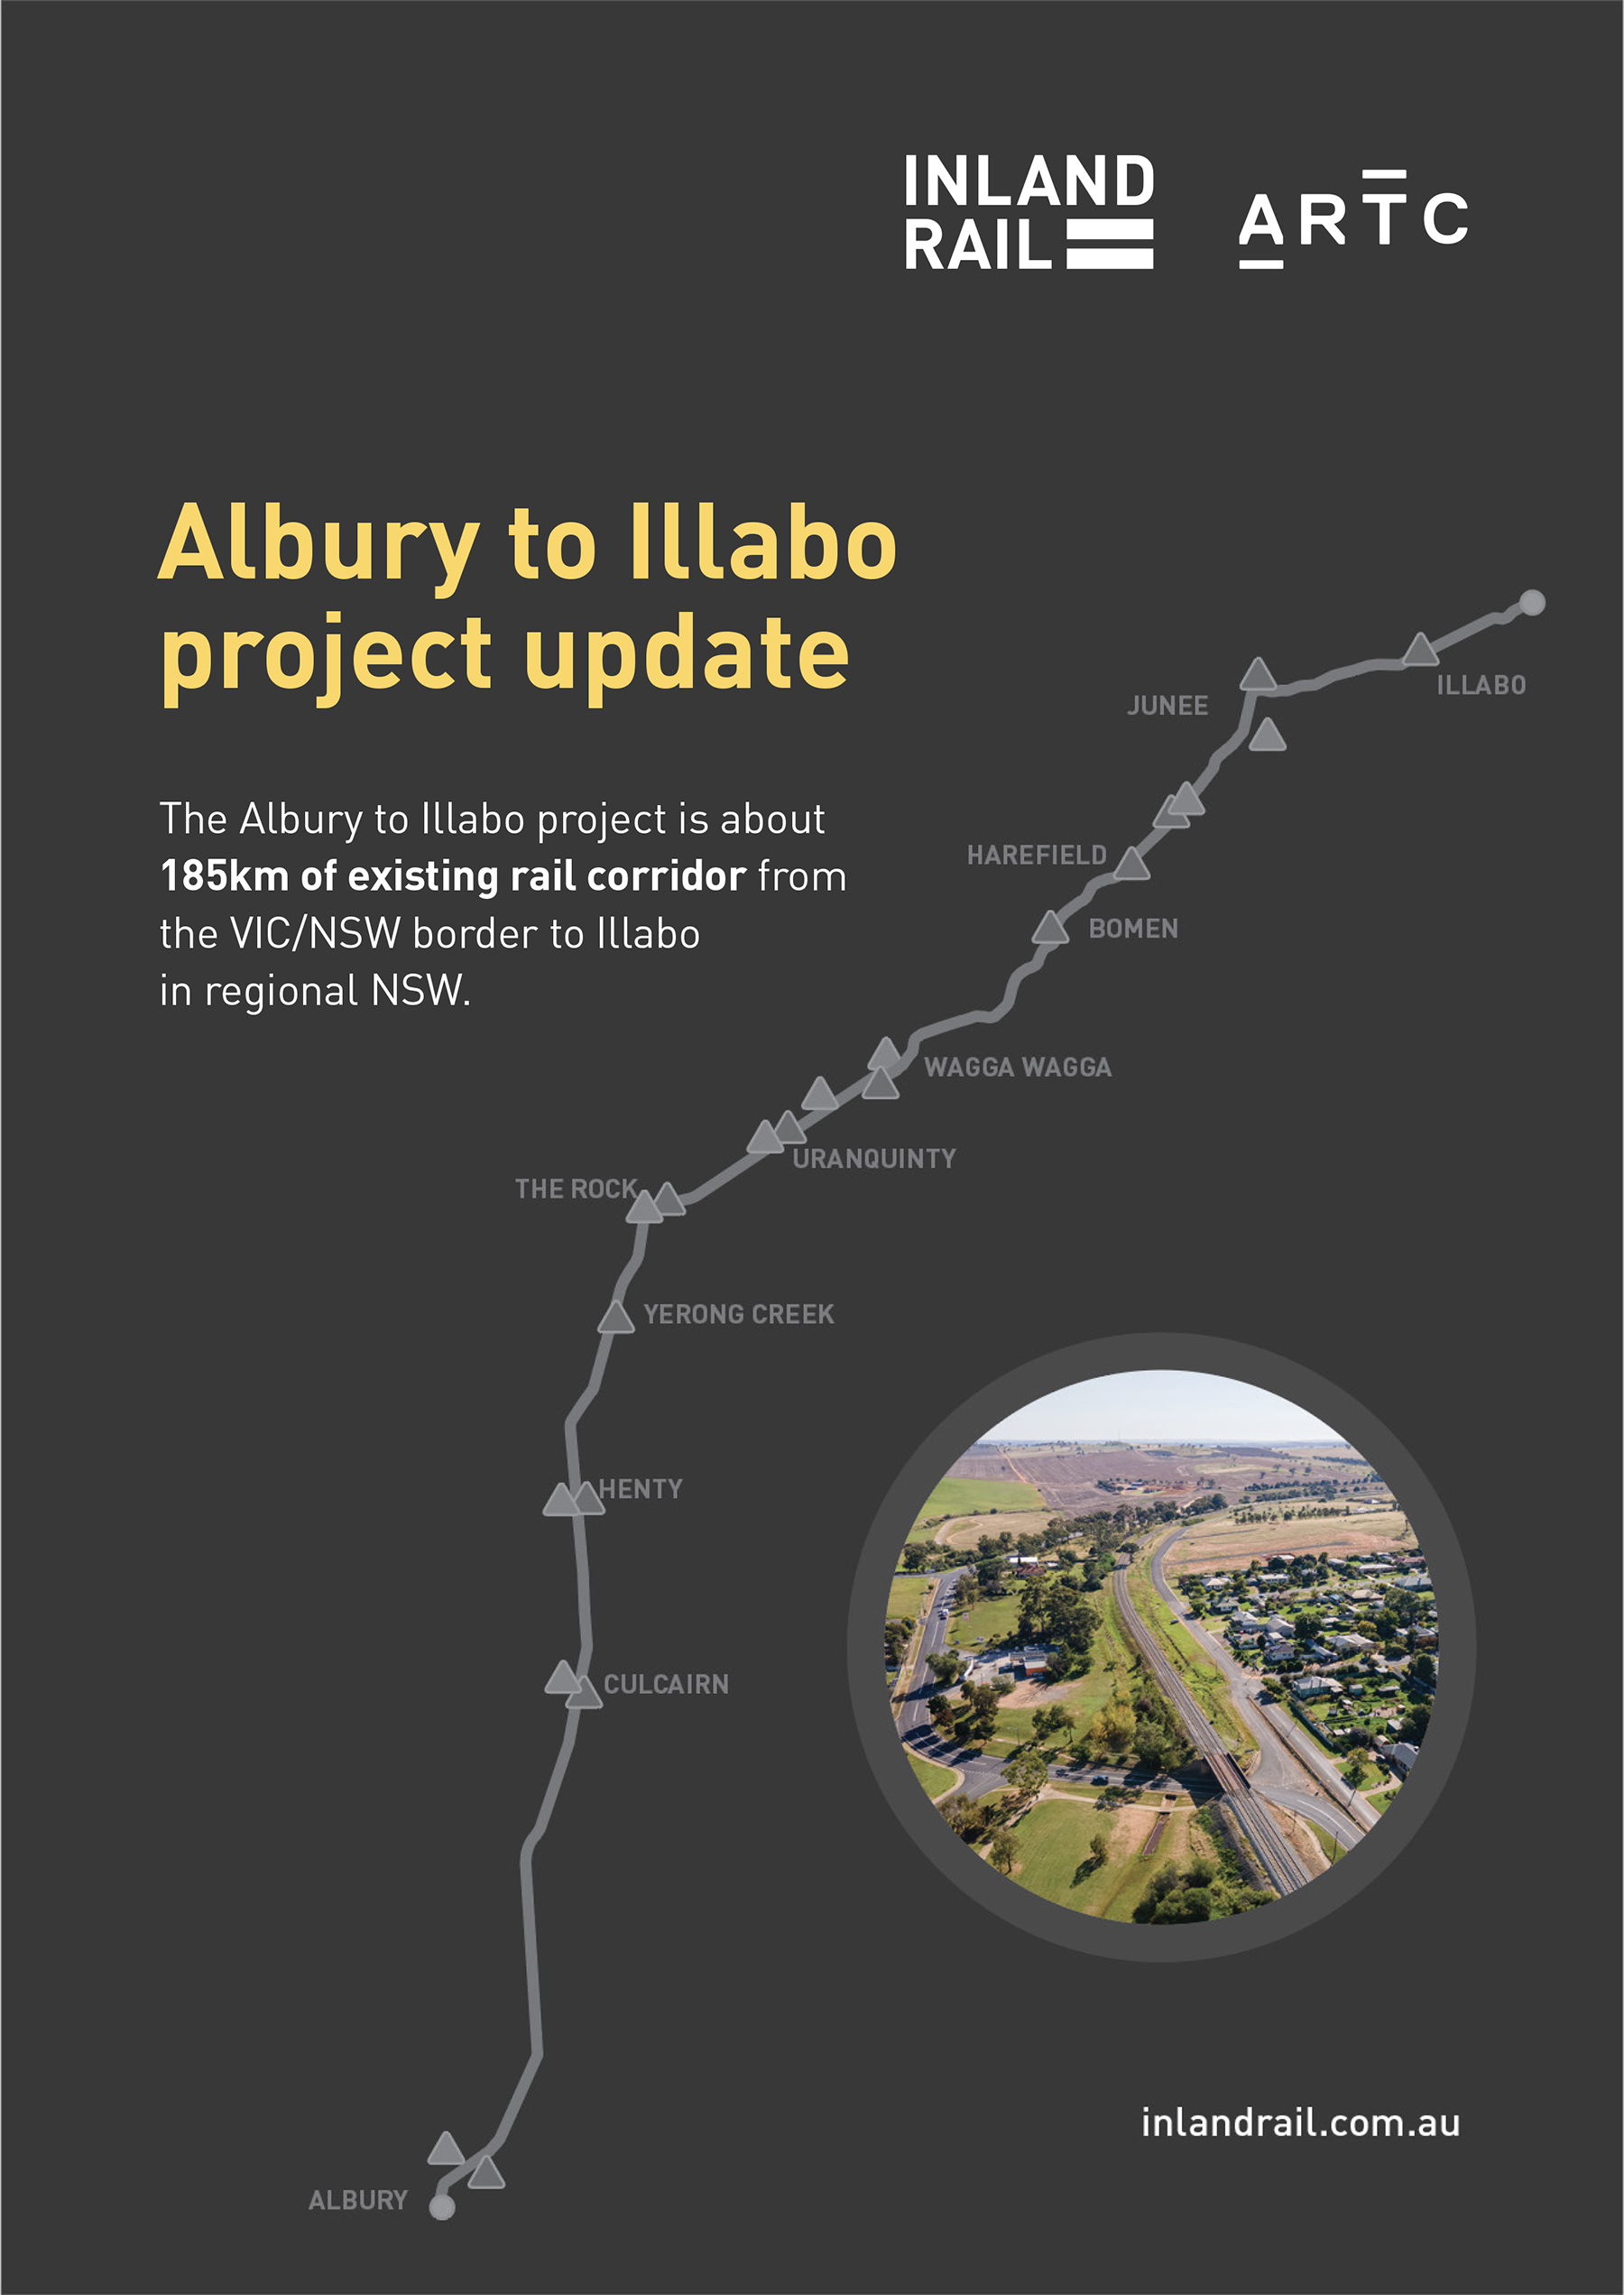 Albury to Illabo project update